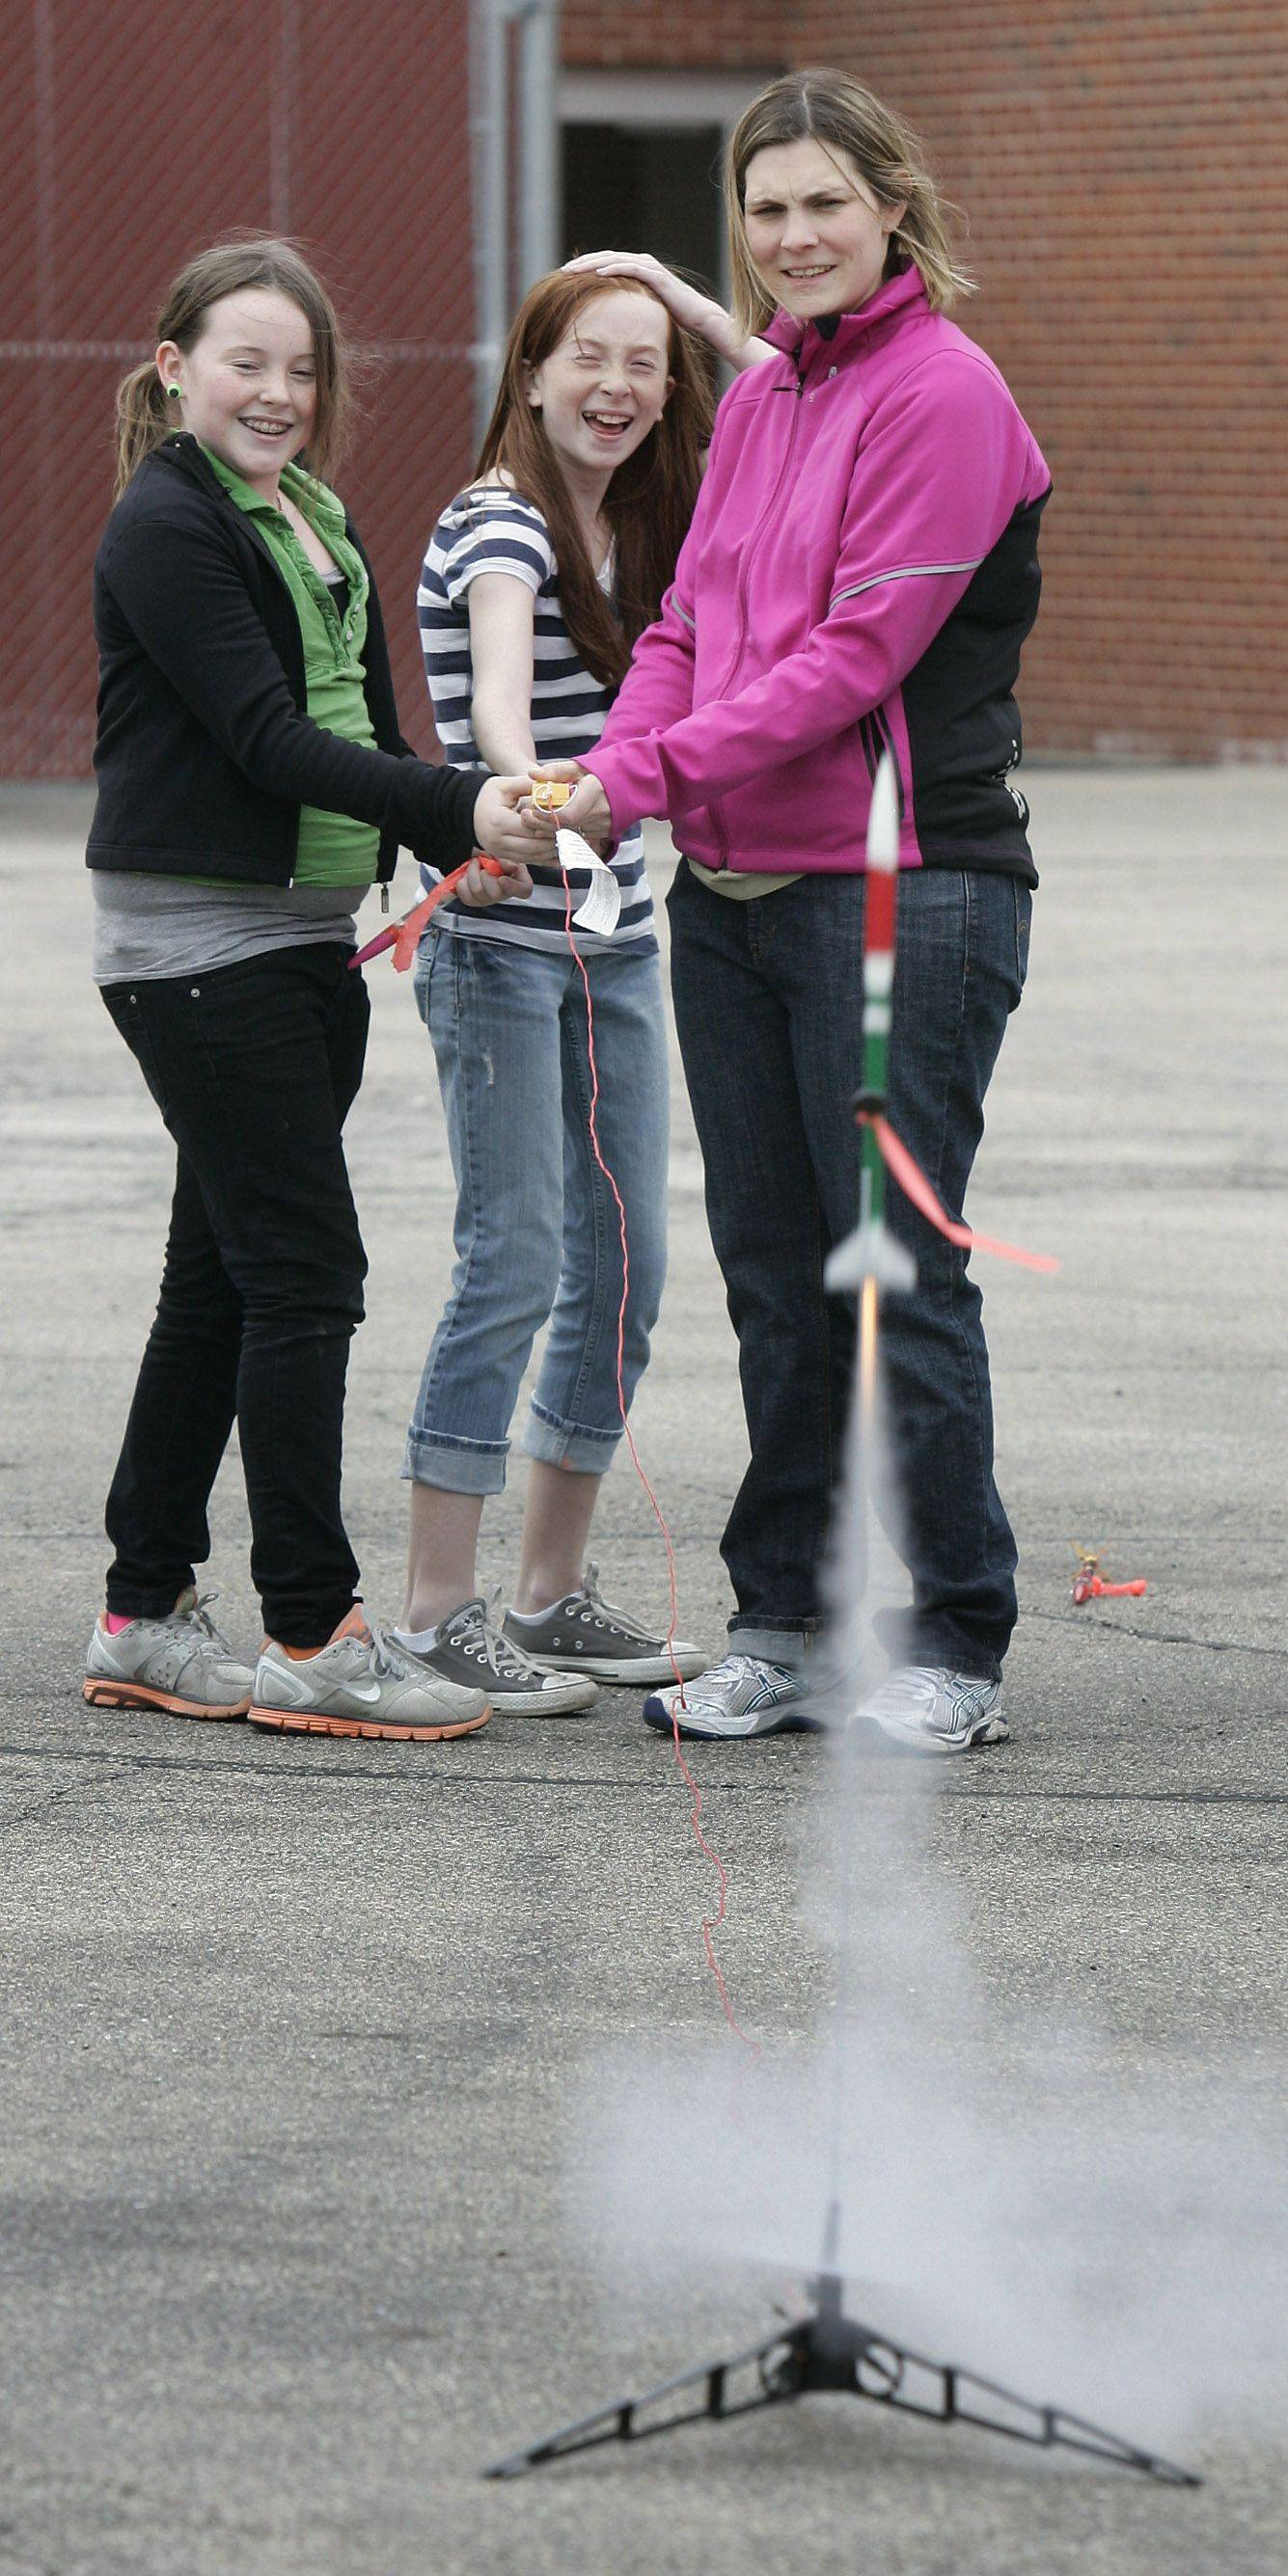 Abbie Sise, left, MacKenzie Linane, and science teacher Emily Loerraker watch the liftoff of Linane's rocket during the launch of handmade rockets at Fremont Middle School in Mundelein.